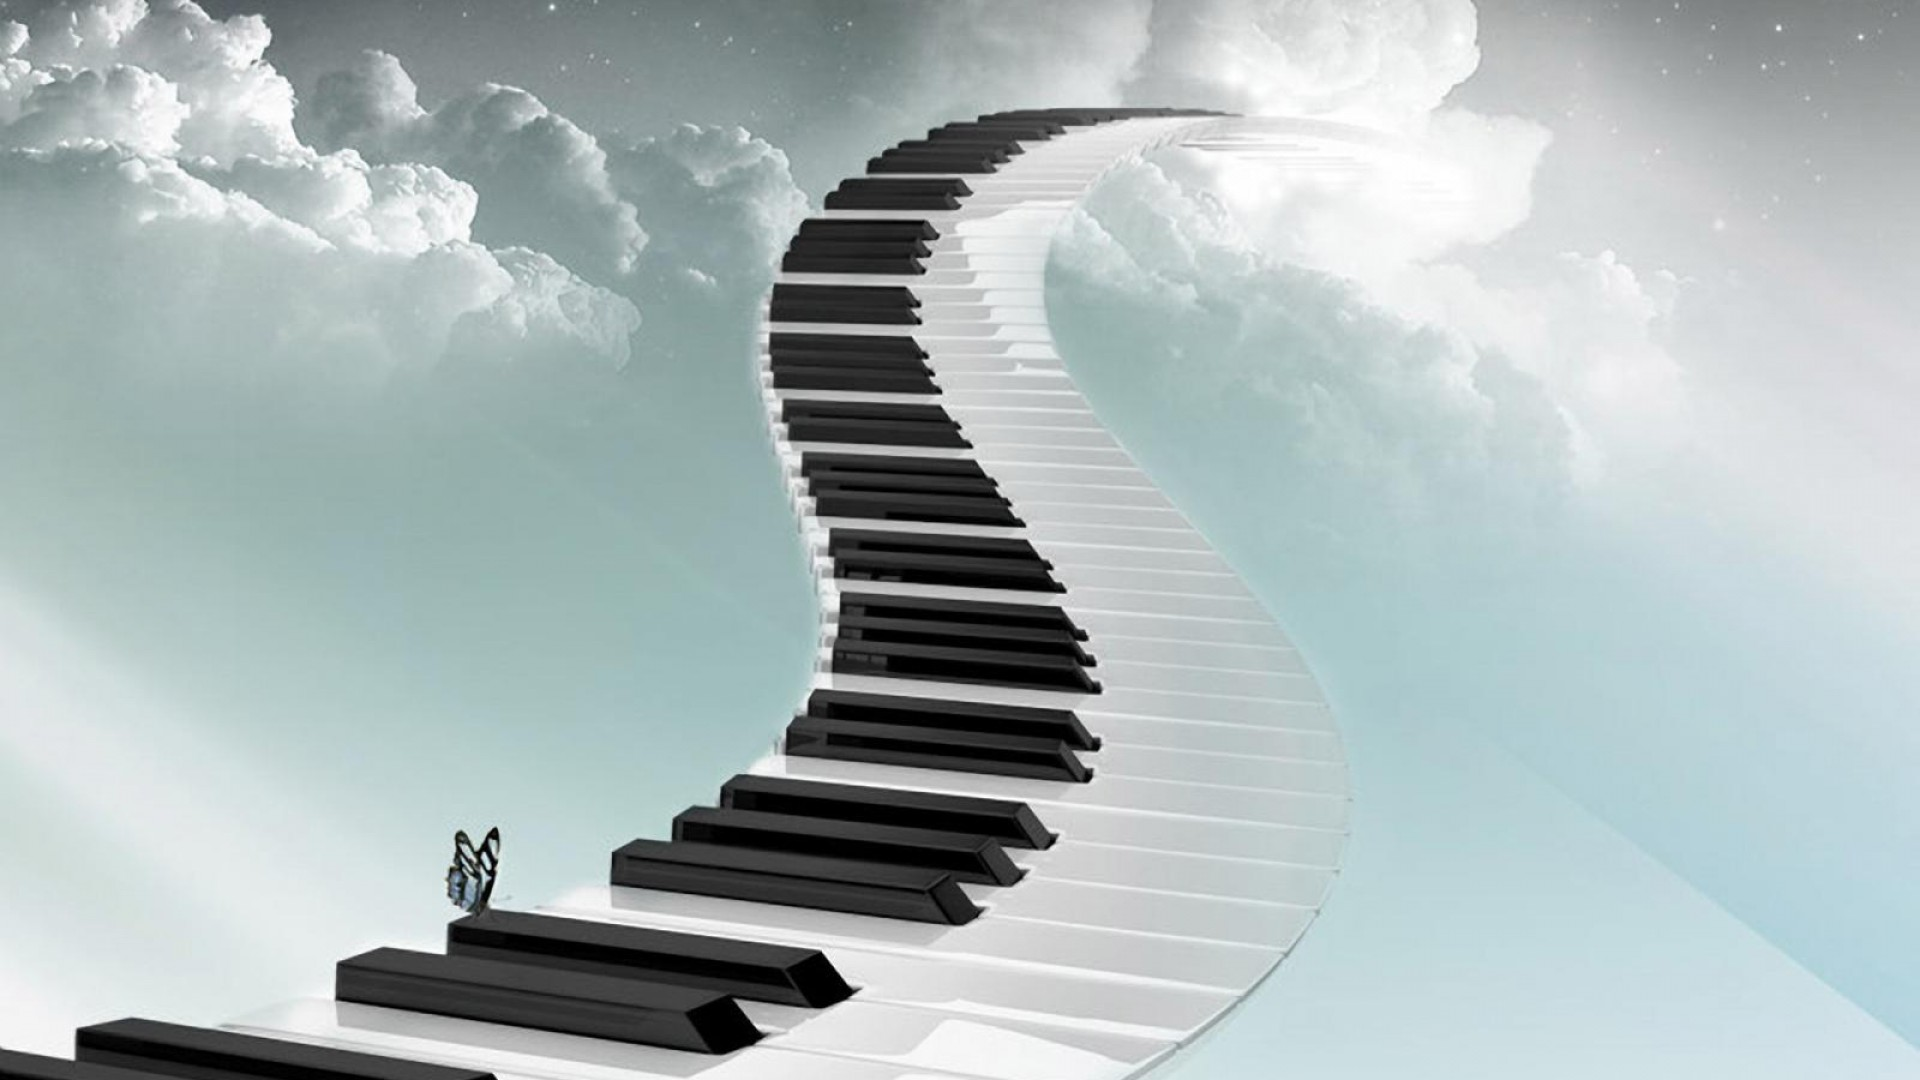 Piano Wallpaper Hd Posted By Ryan Anderson